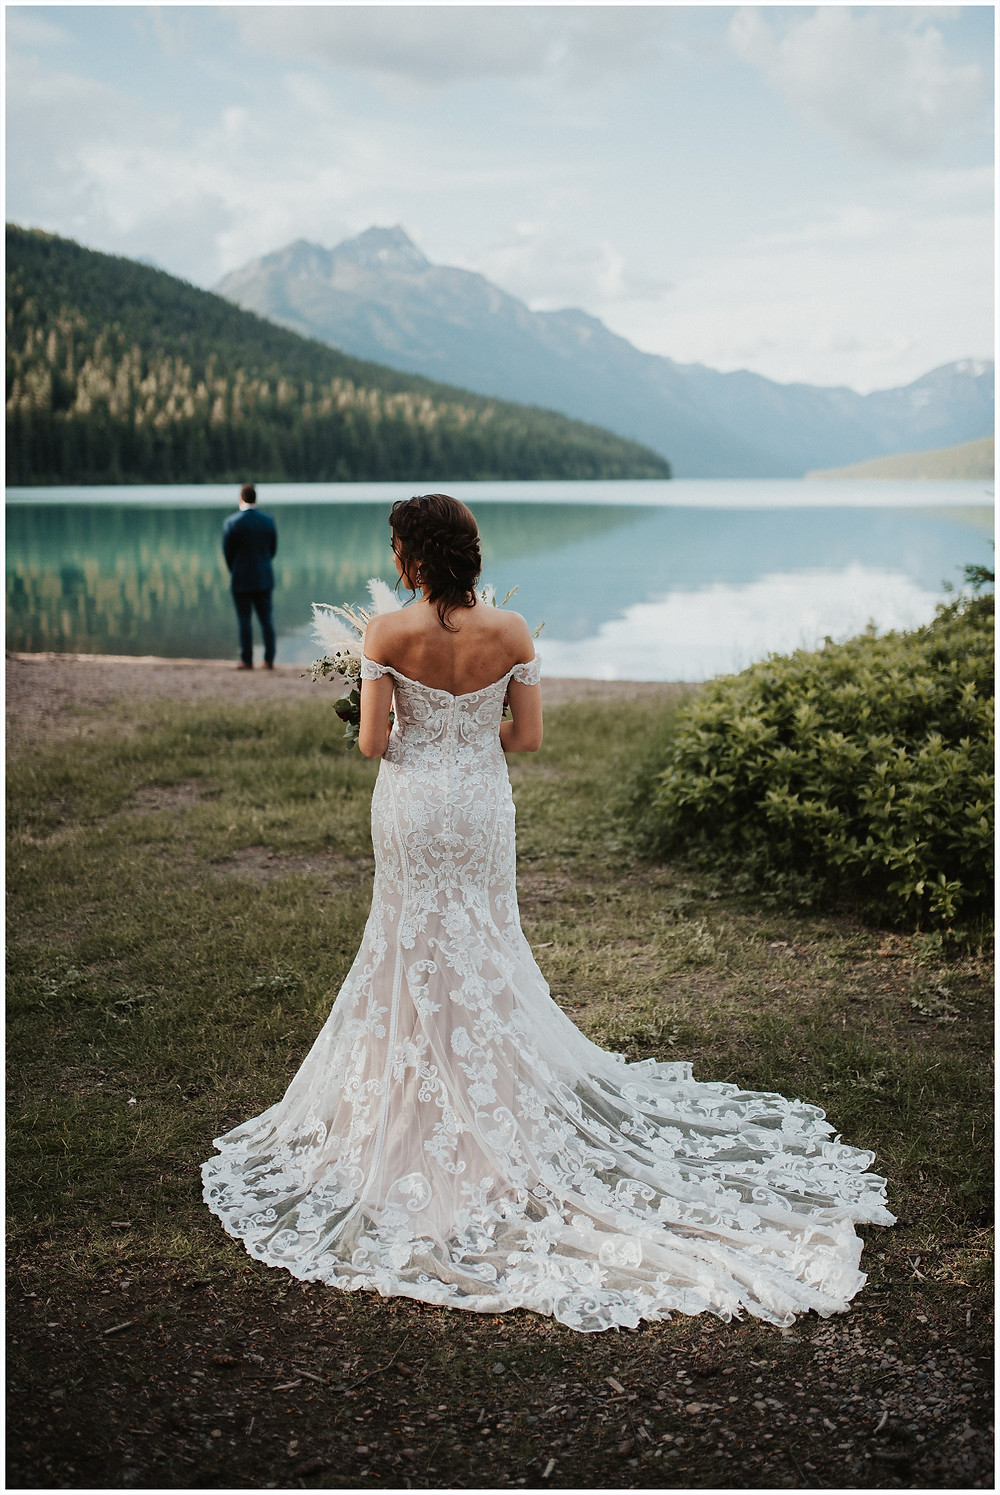 first look inspiration, first look photos, Glacier National Park, Elegant and Romantic Styled Elopement, Katy Shay Photo, Montana Wedding and Elopement Photographer, Glacier National Park Photographer, Moody photos, glamorous wedding, Navy, maroon, coral, lace wedding dress, Bozeman photographer, Missoula photographer, Kalispell photographer, Glacier NP, Bowman Lake